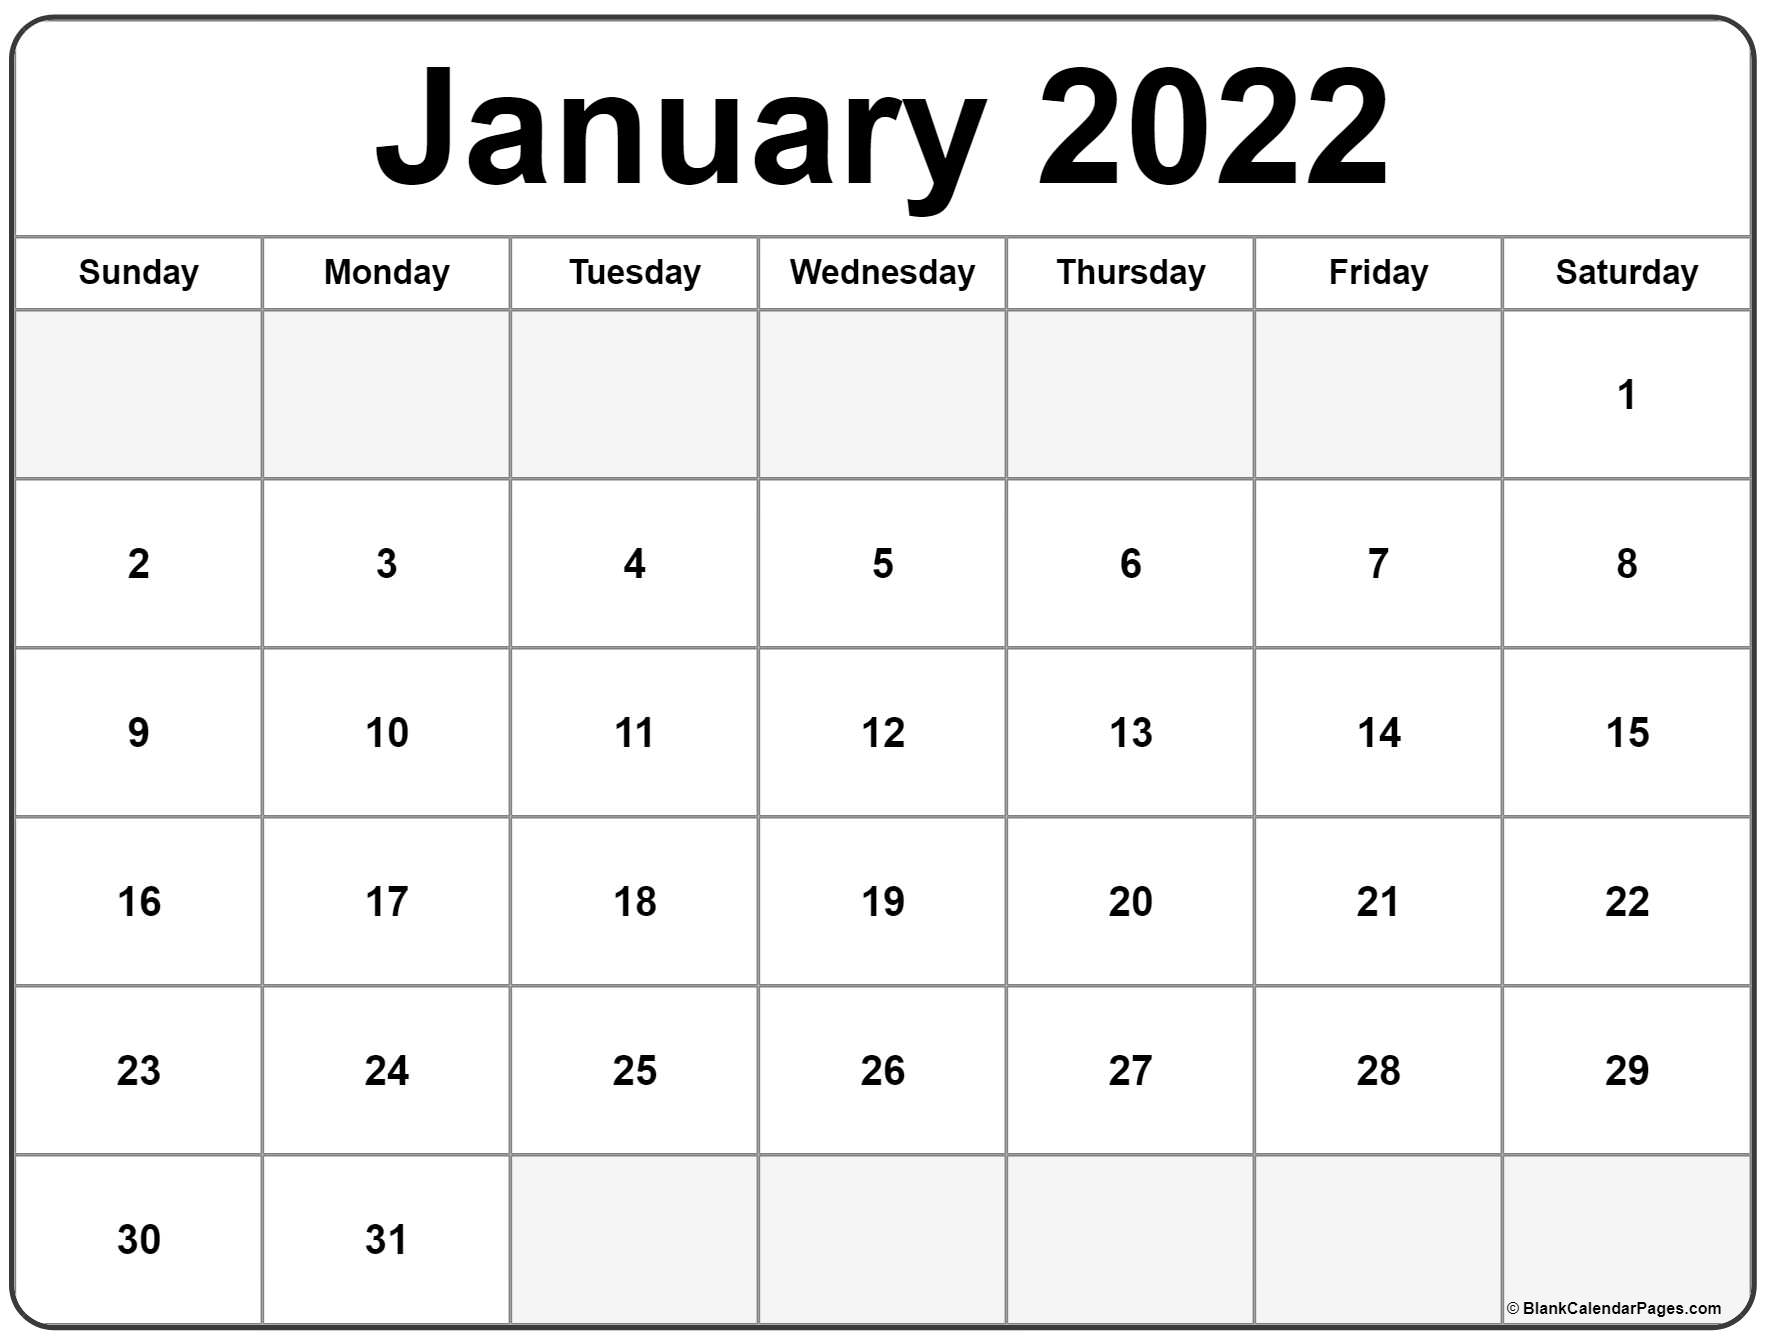 January 2022 calendar | free printable monthly calendars